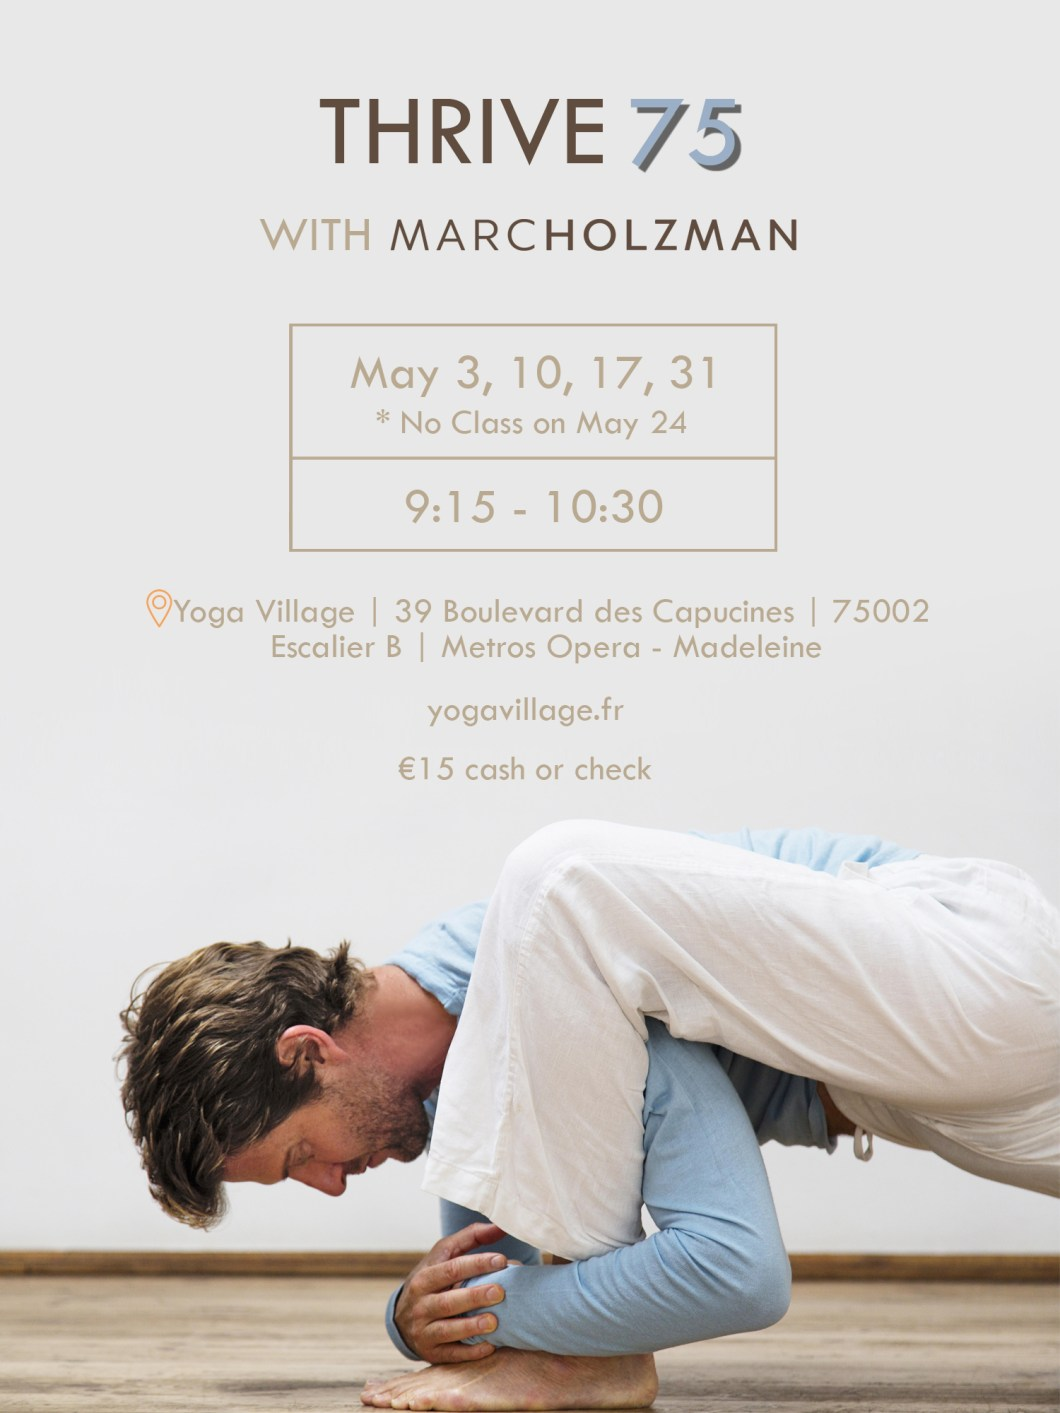 Marc Holzman Yoga Paris Village 3b481e3af6b